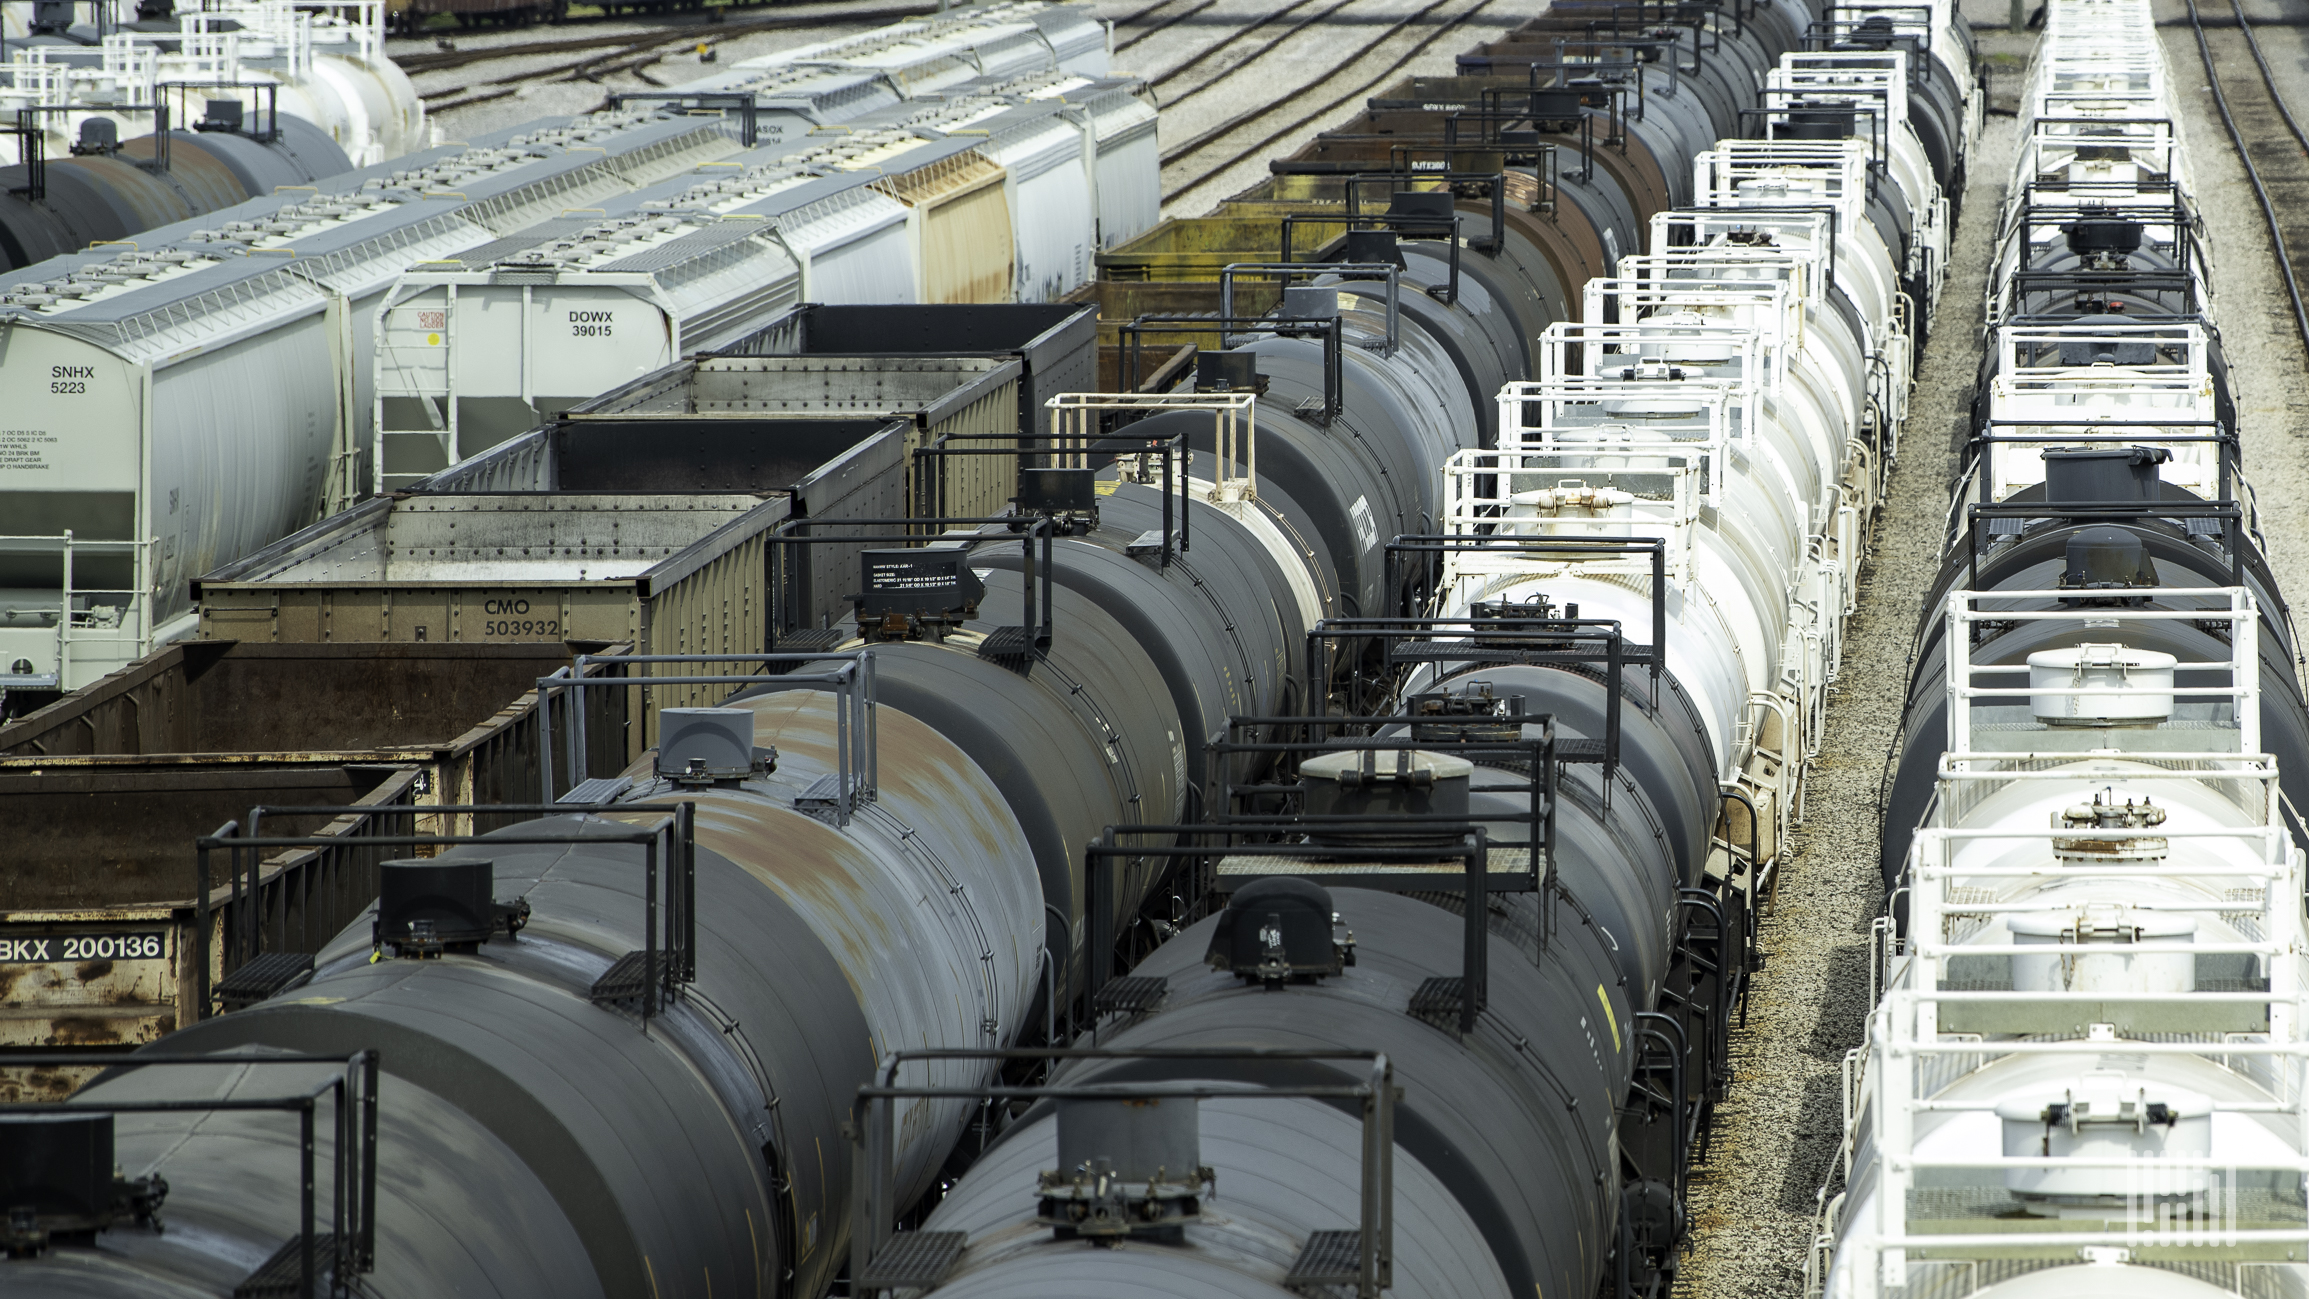 A photograph of a tank cars and grain hoppers parked in a rail yard.